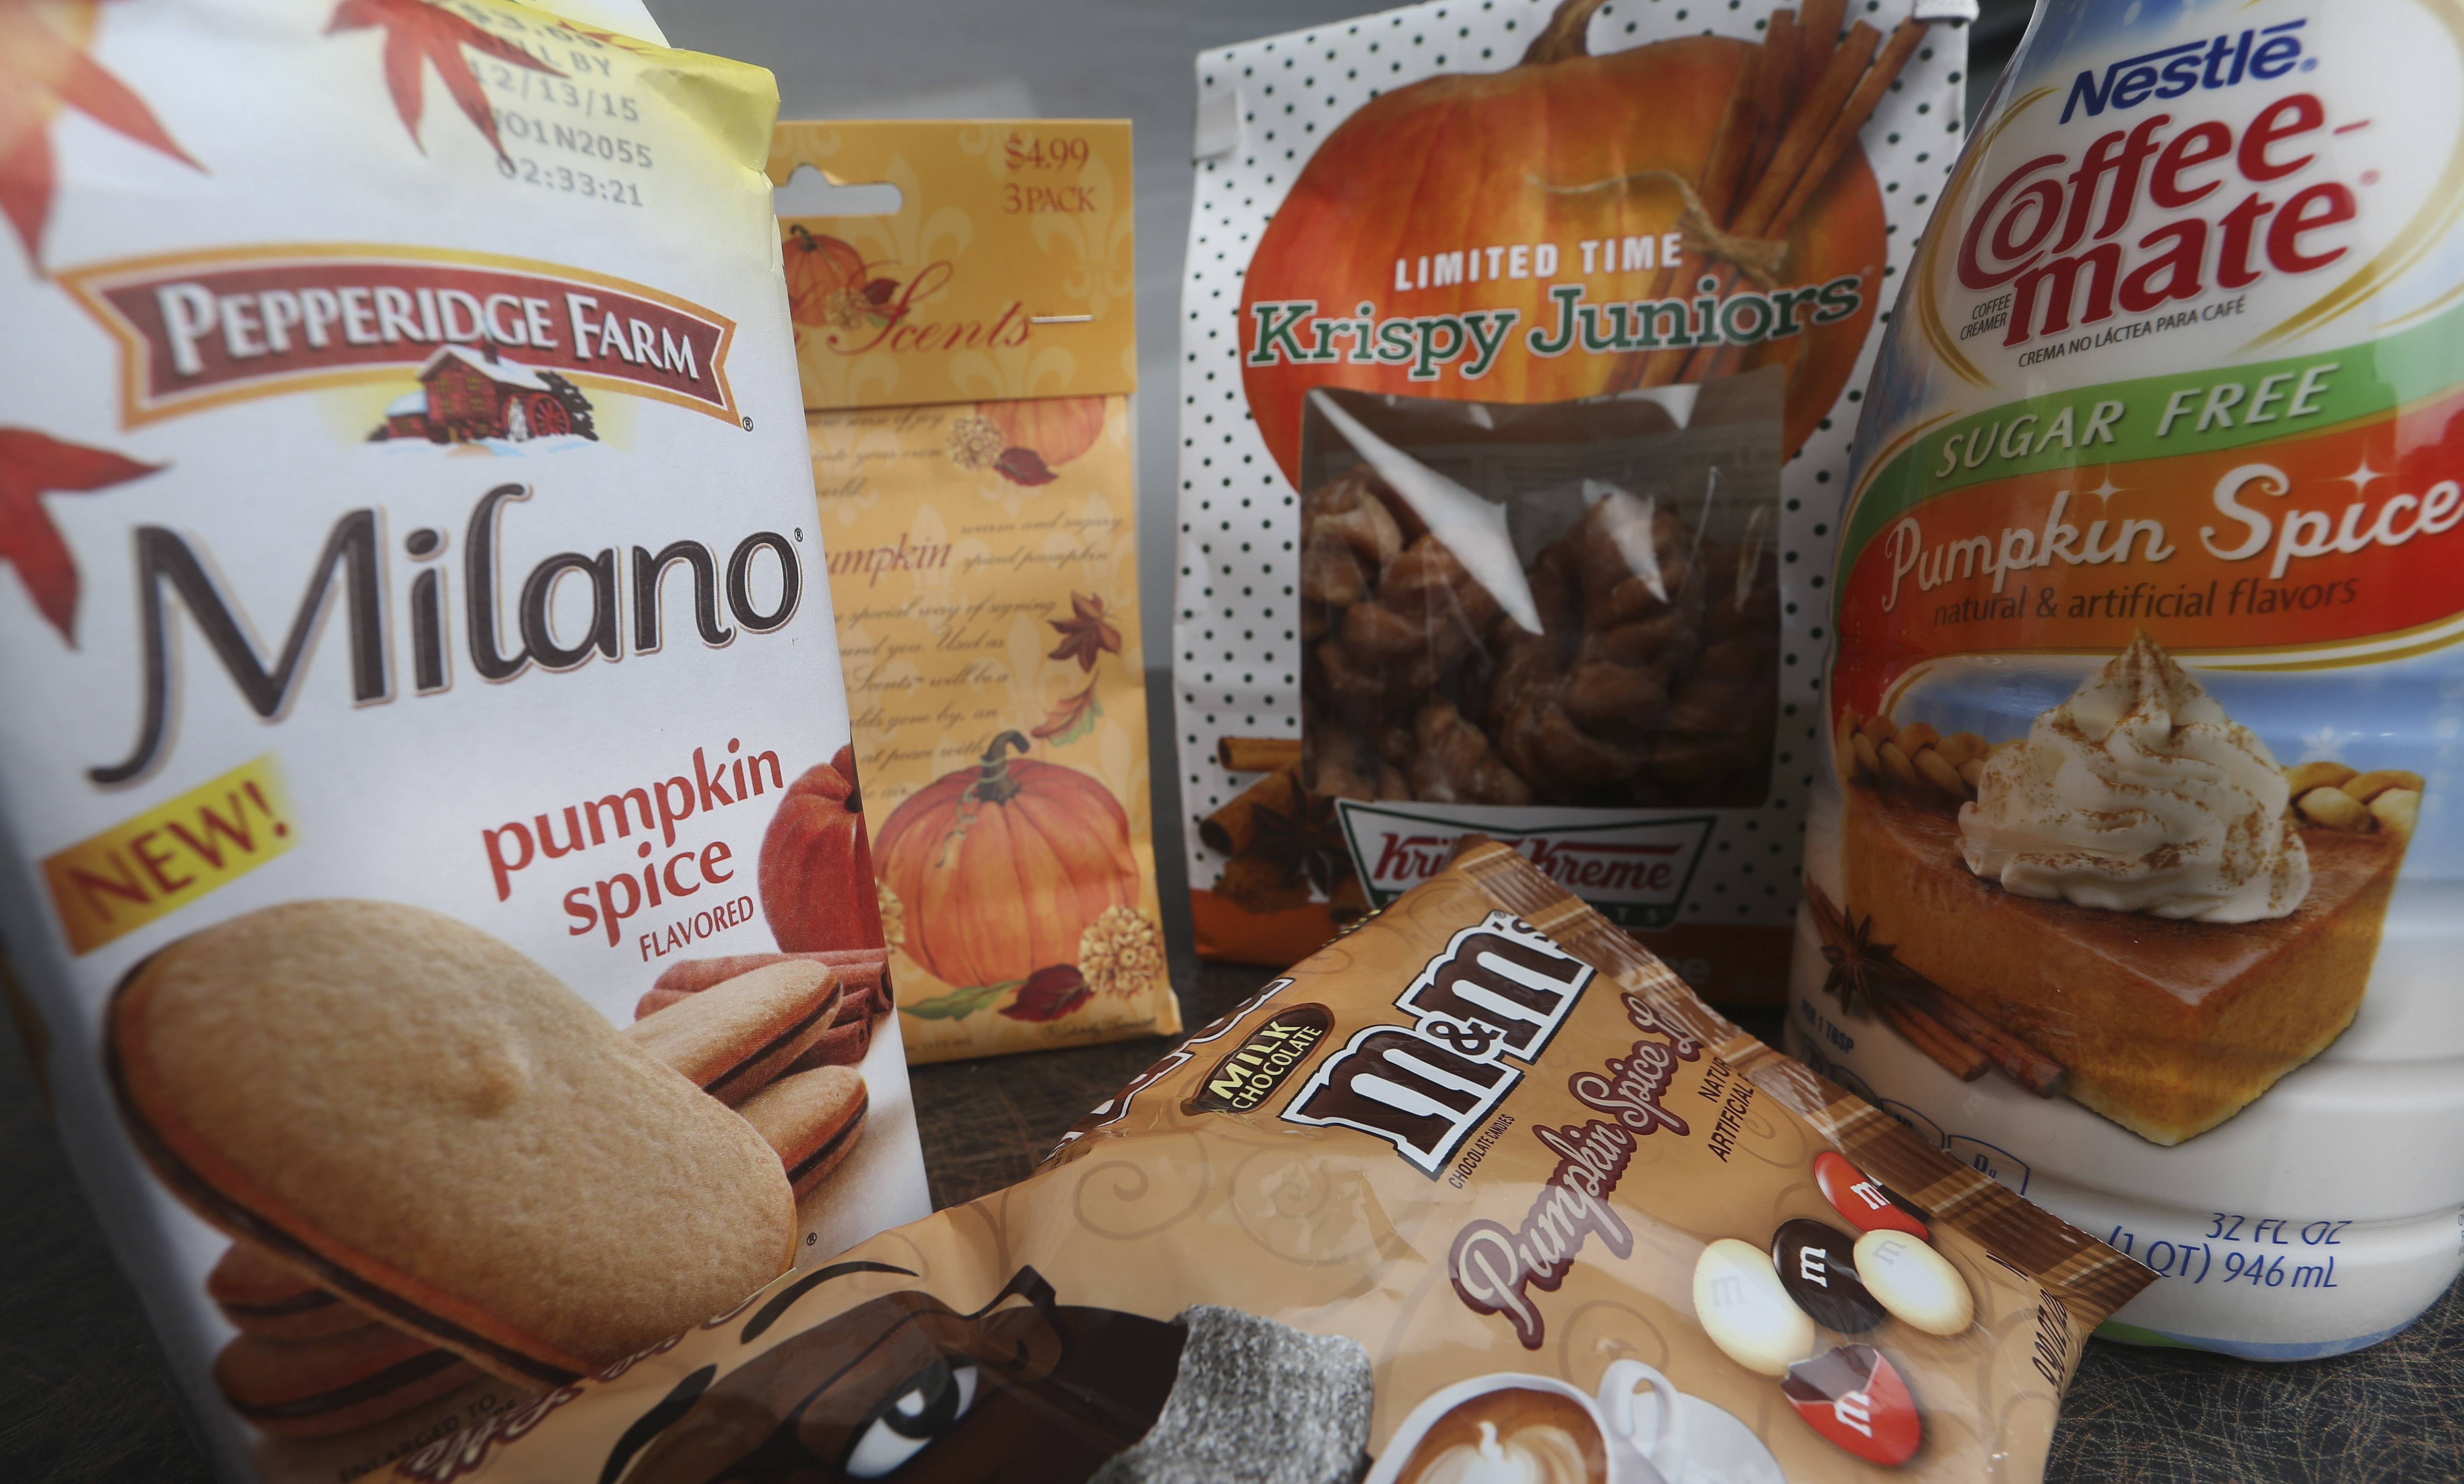 These days, pumpkin spice is a modifier on a list of foods that grows longer each fall: There are pumpkin spice lattes and breakfast cereals, doughnuts and yogurt-coated pretzels, pancakes and candy, even pizza and beer.